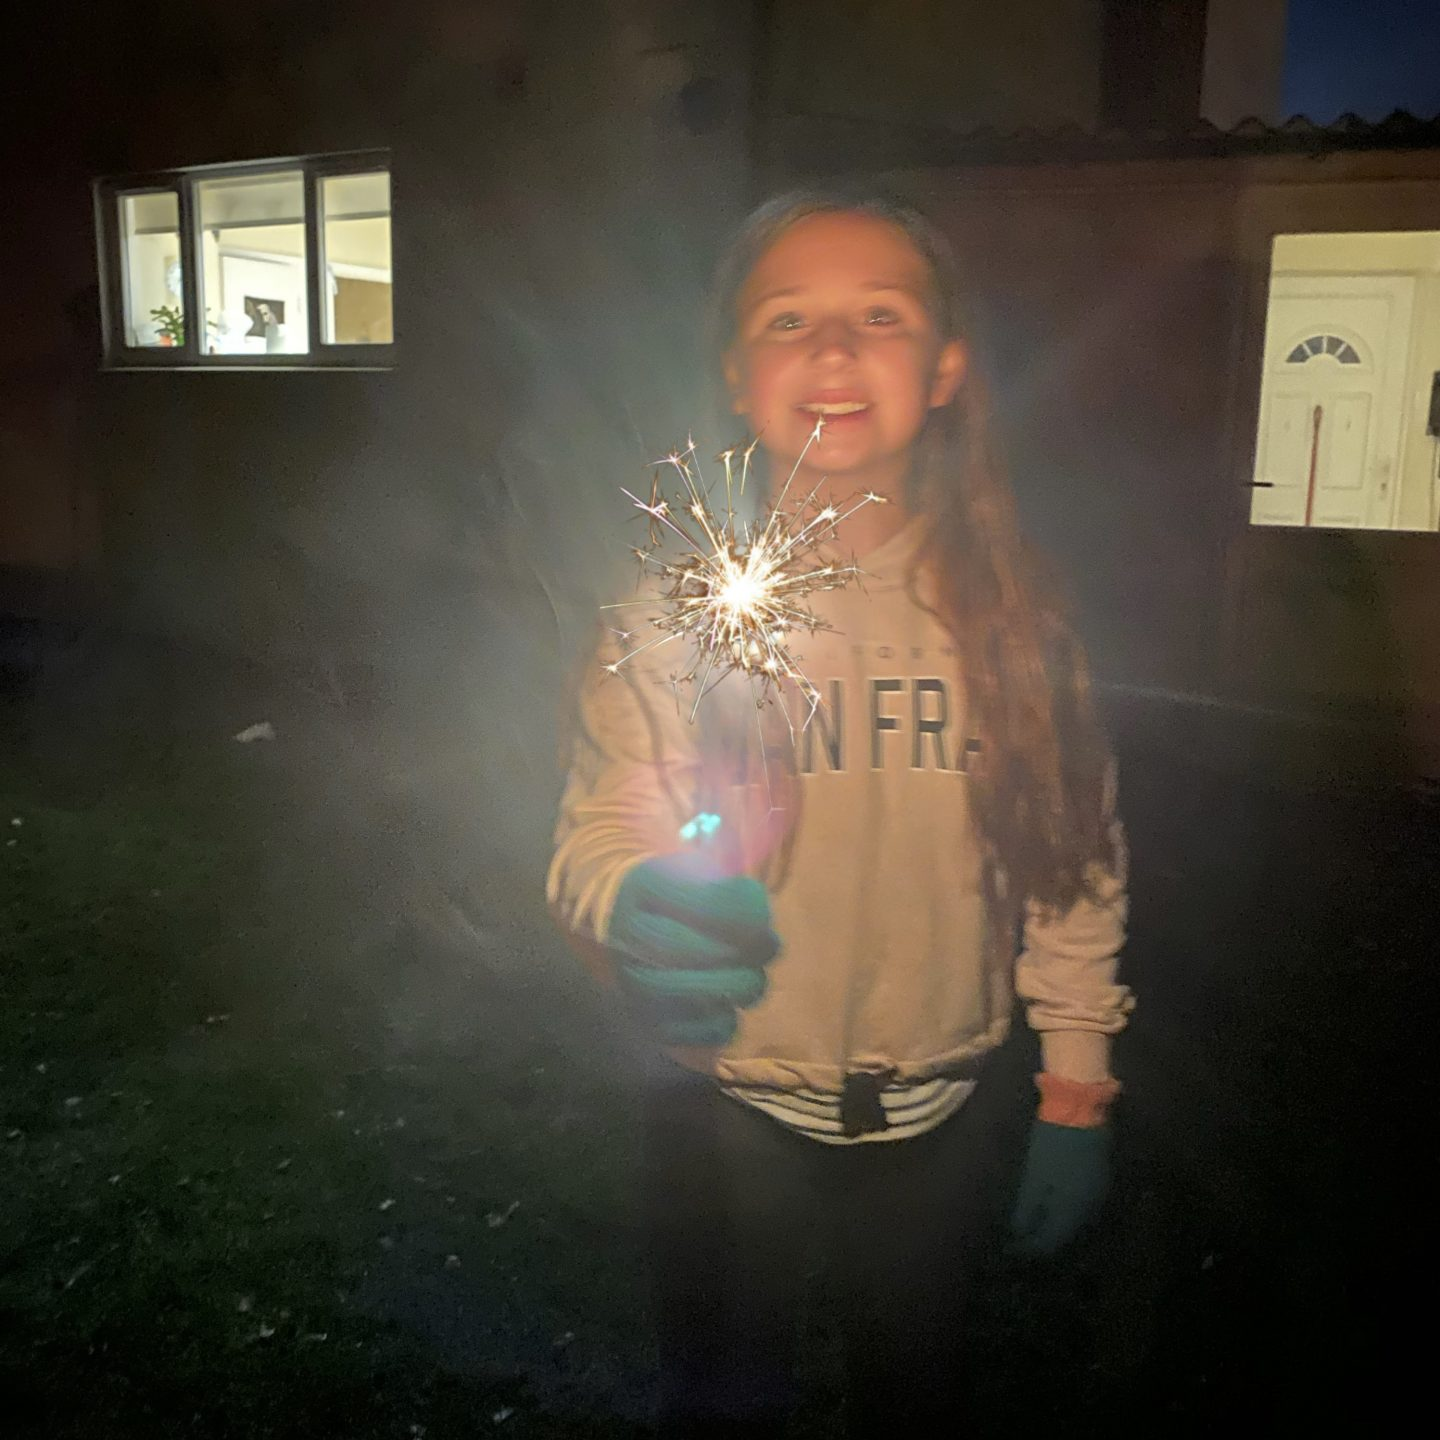 A girl holding a sparkler in the dark